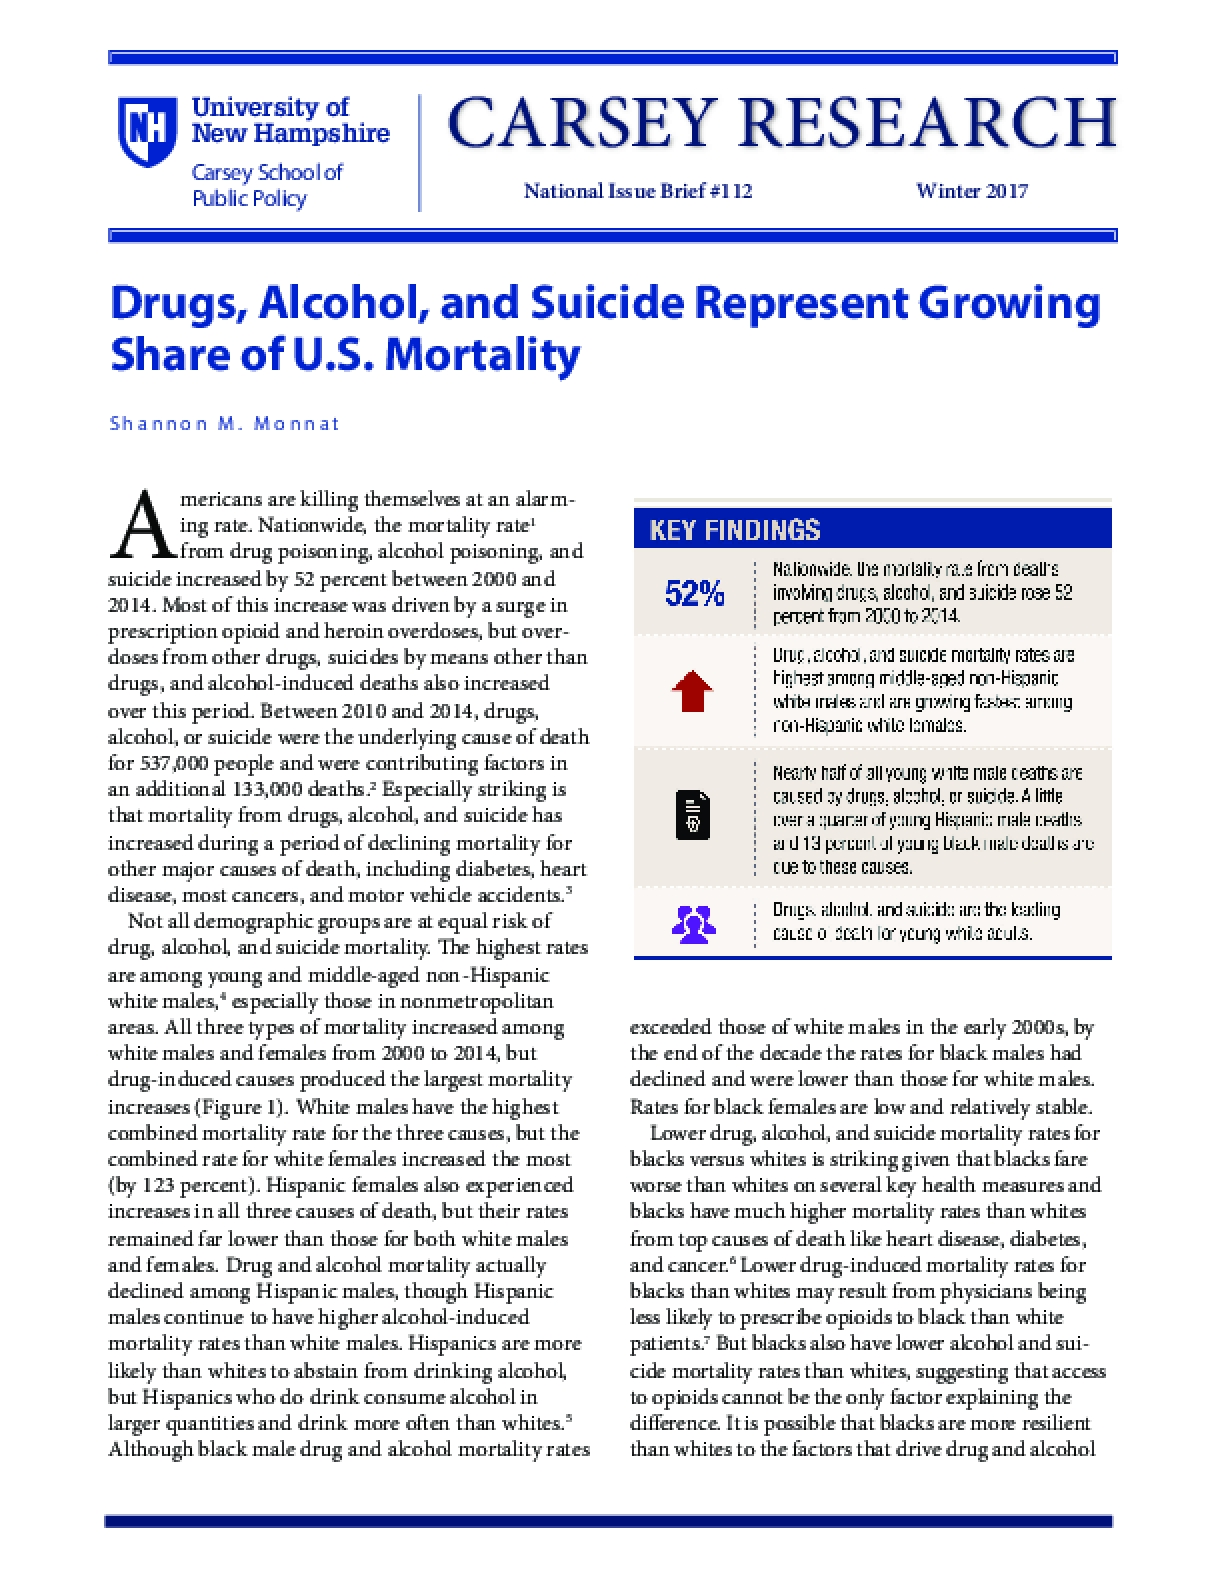 Drugs, Alcohol, and Suicide Represent Growing Share of U.S. Mortality